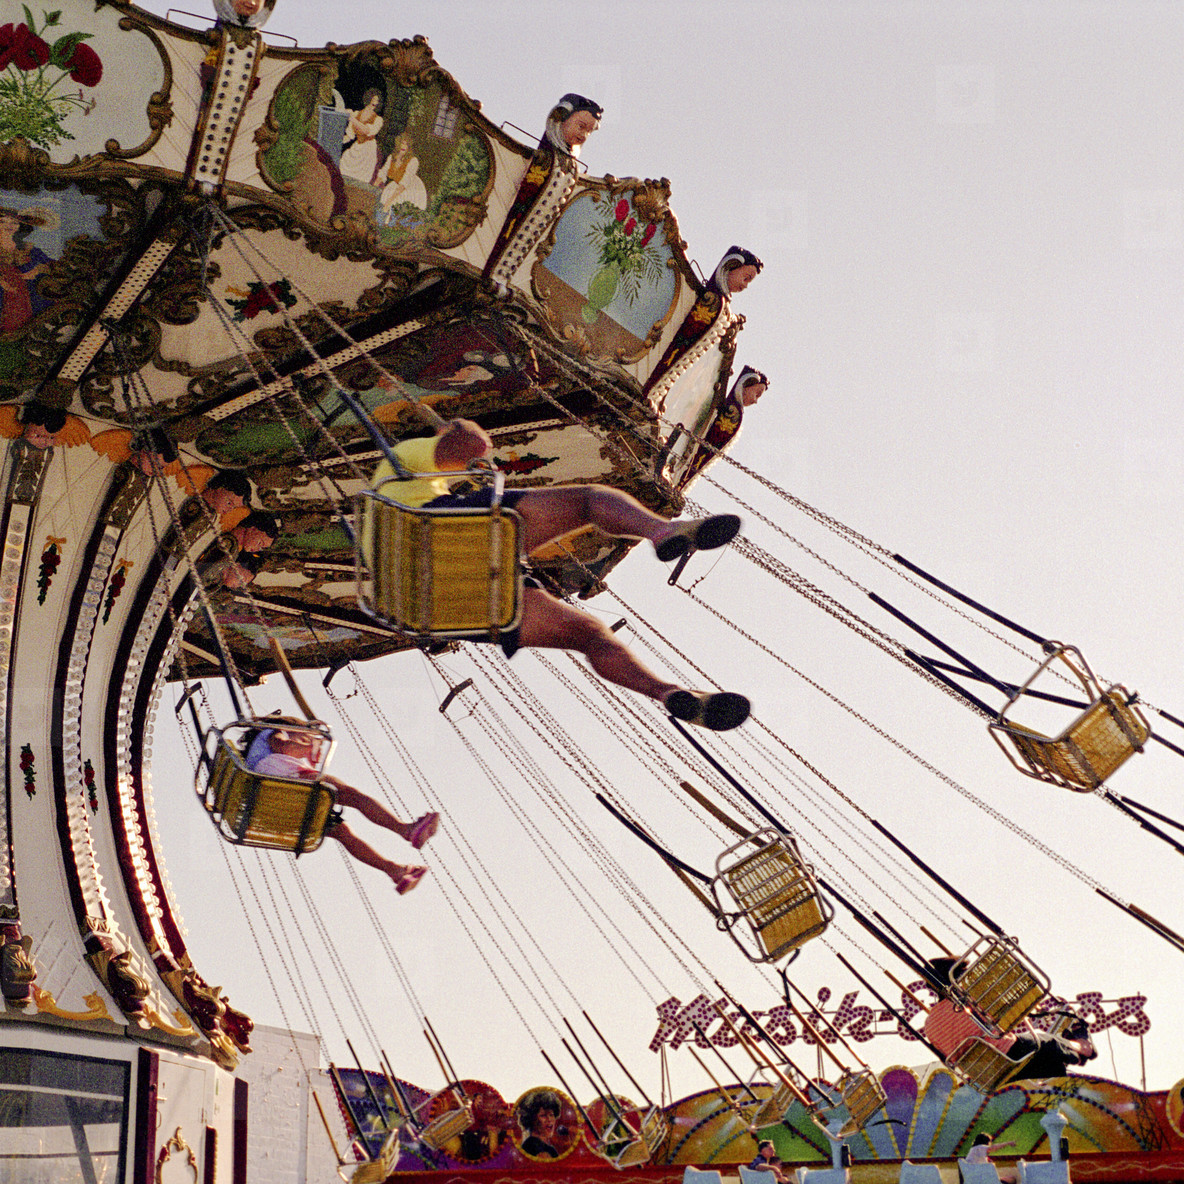 Swing ride at boardwalk carnival